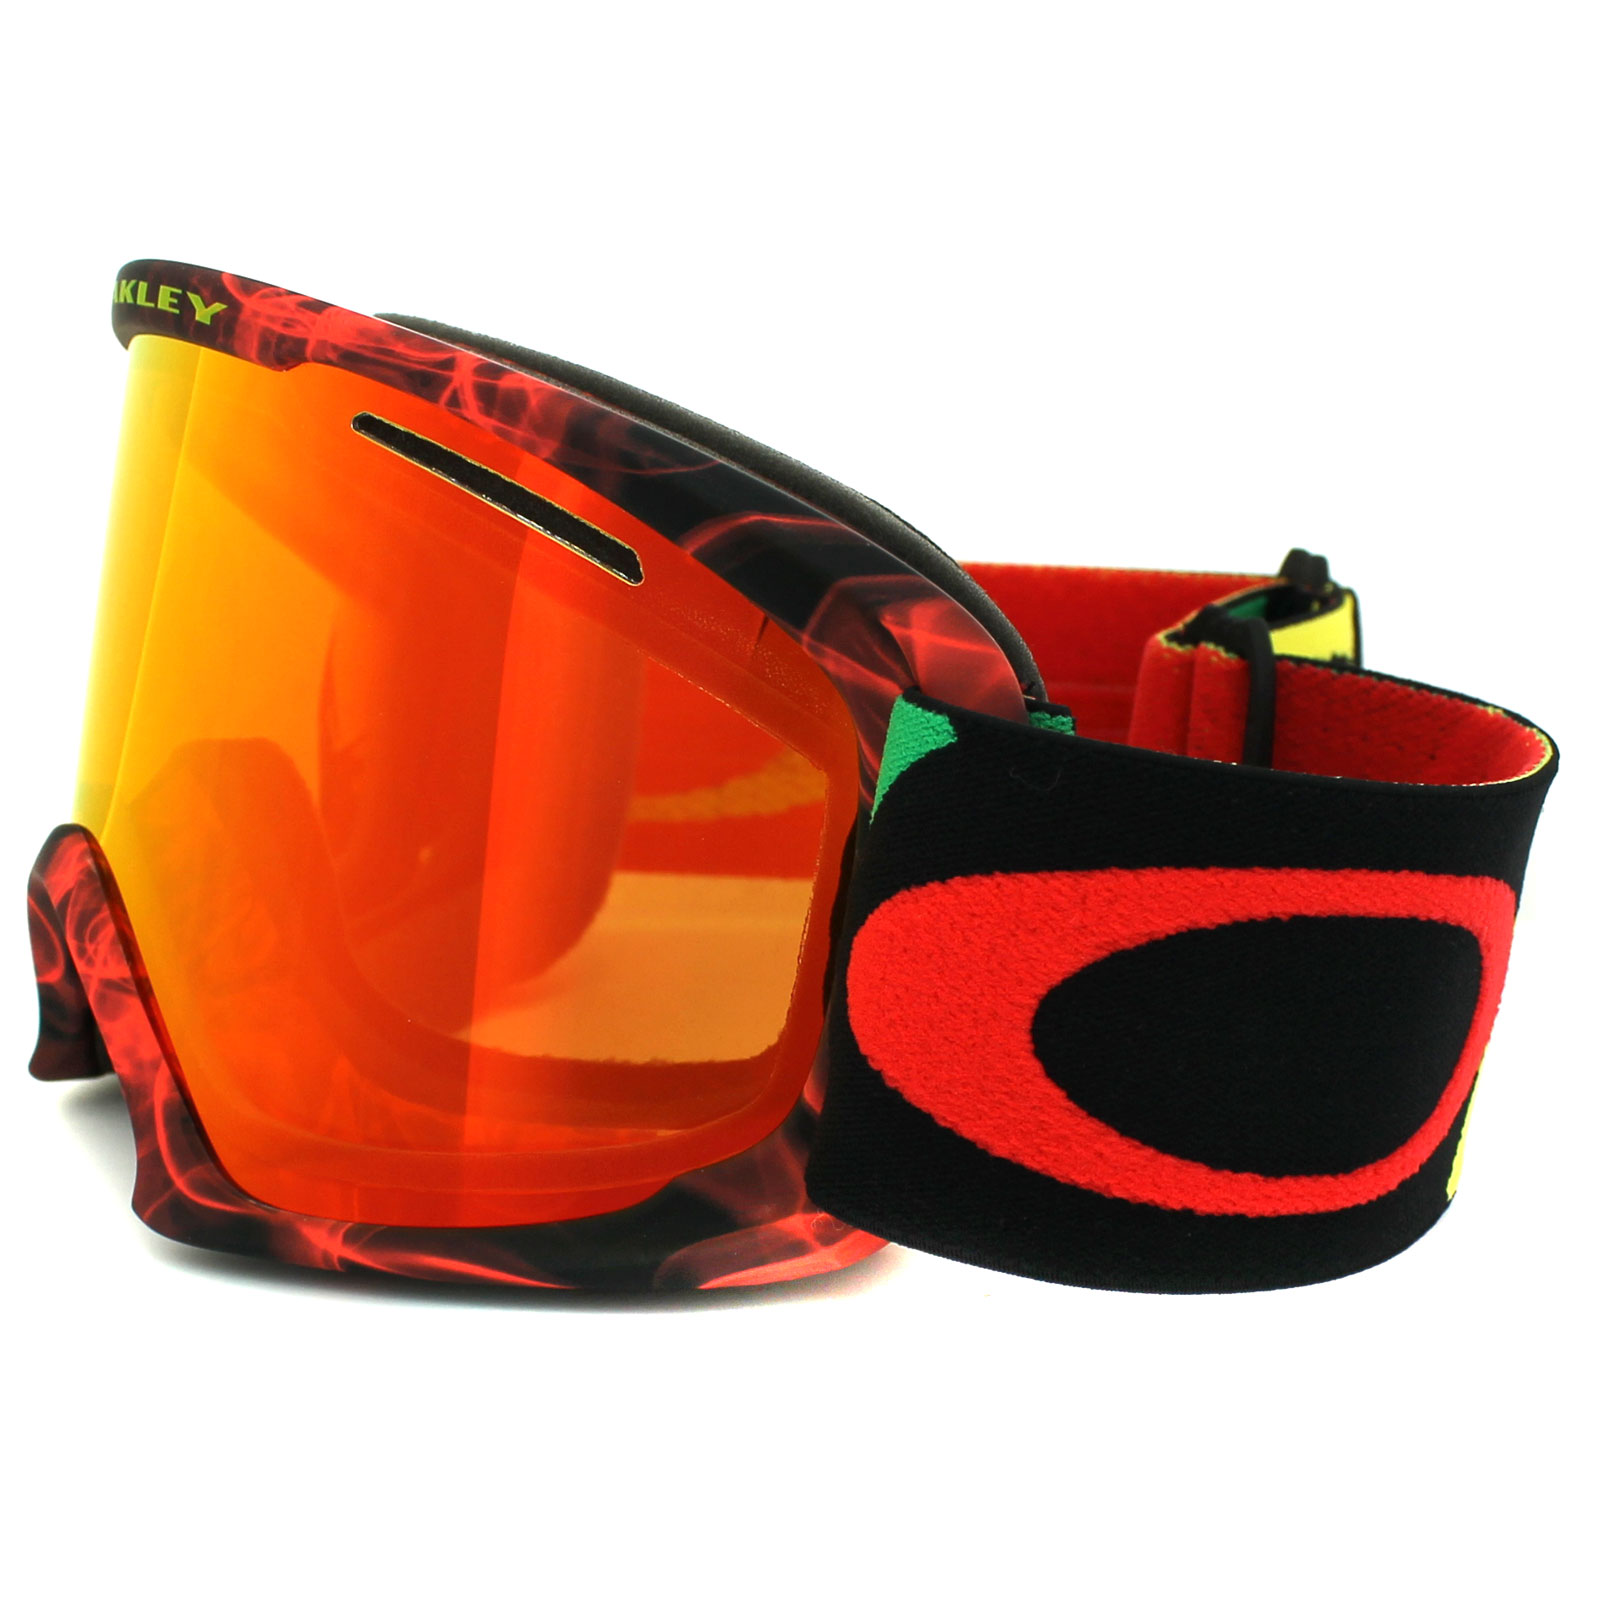 discount oakley goggles  Cheap Oakley 02 XL Goggles - Discounted Sunglasses